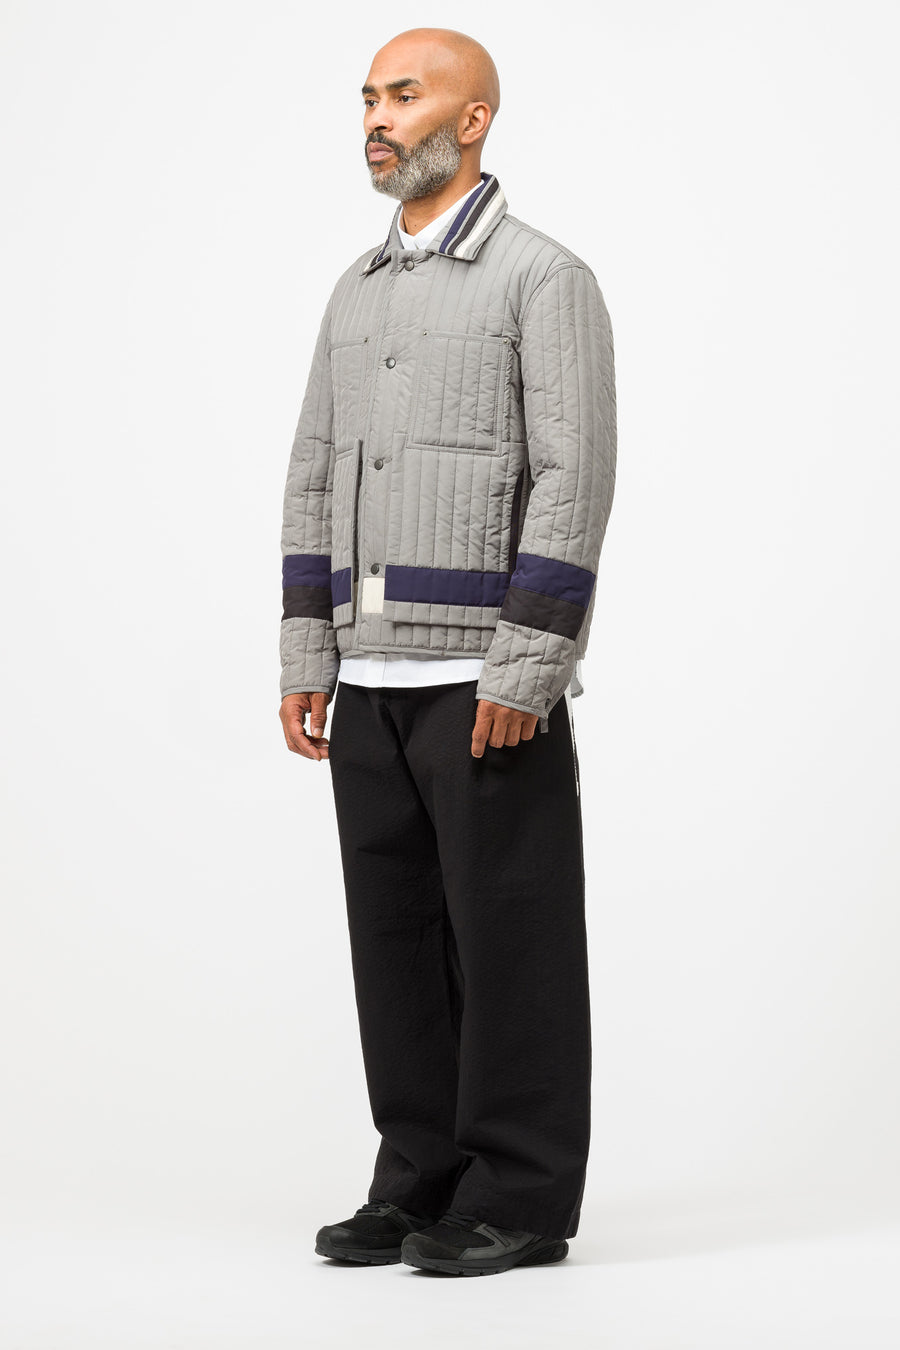 Craig Green Paneled Quilted Worker Jacket in Grey - Notre